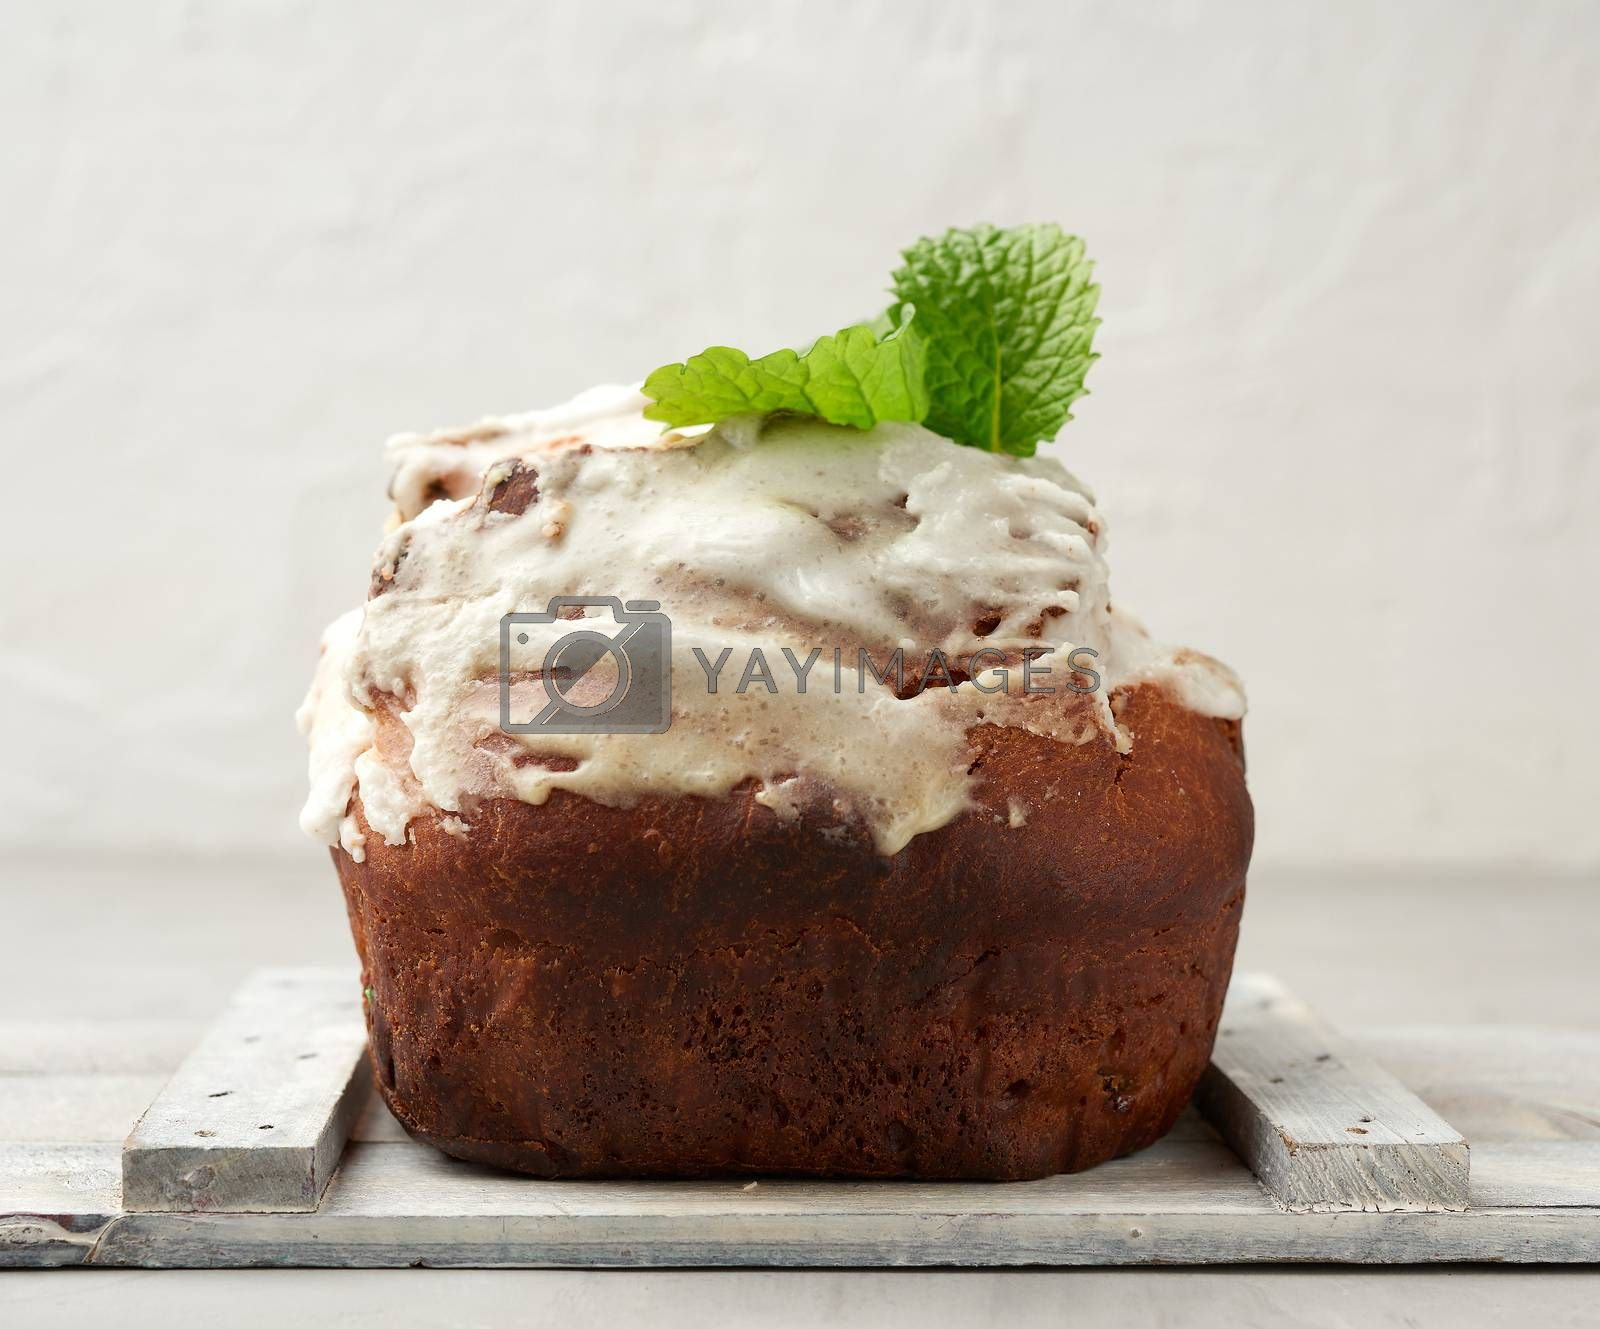 baked Easter cake with white lemon glaze on a white wooden board by ndanko